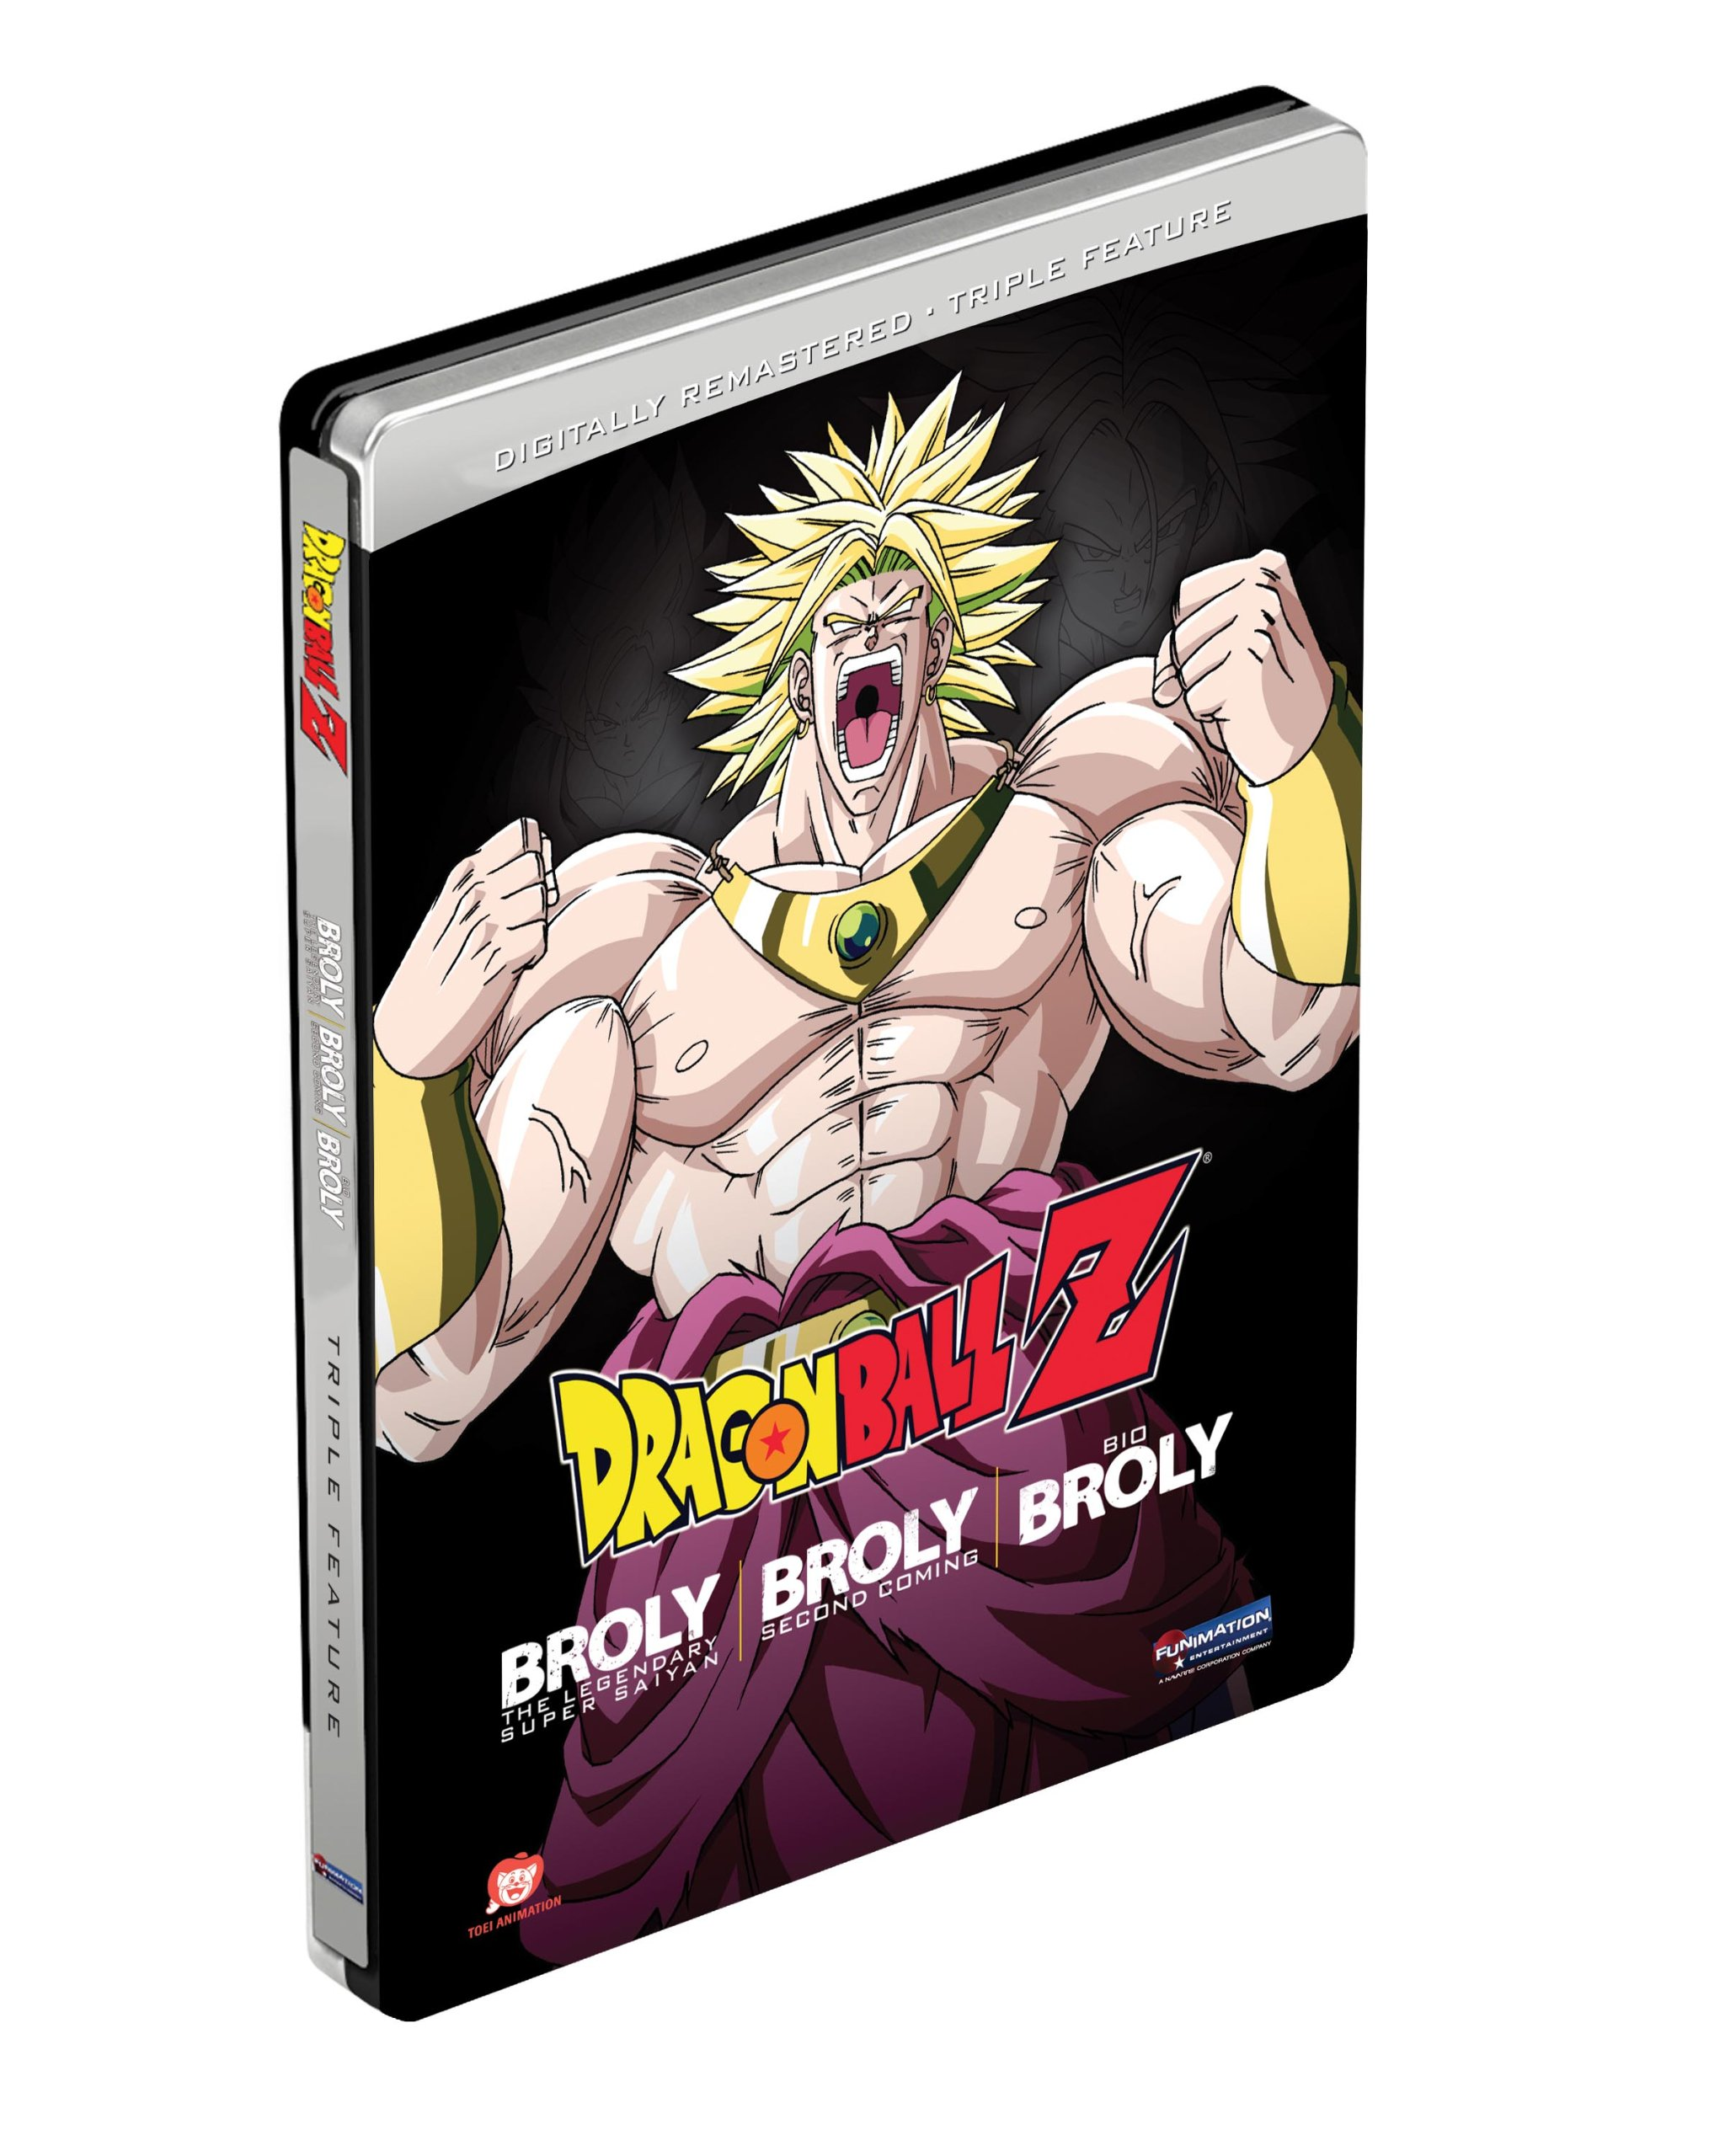 Dragon Ball Z: Broly Triple Feature (Broly / Broly Second Coming / Bio-Broly) (Steelbook Packaging)